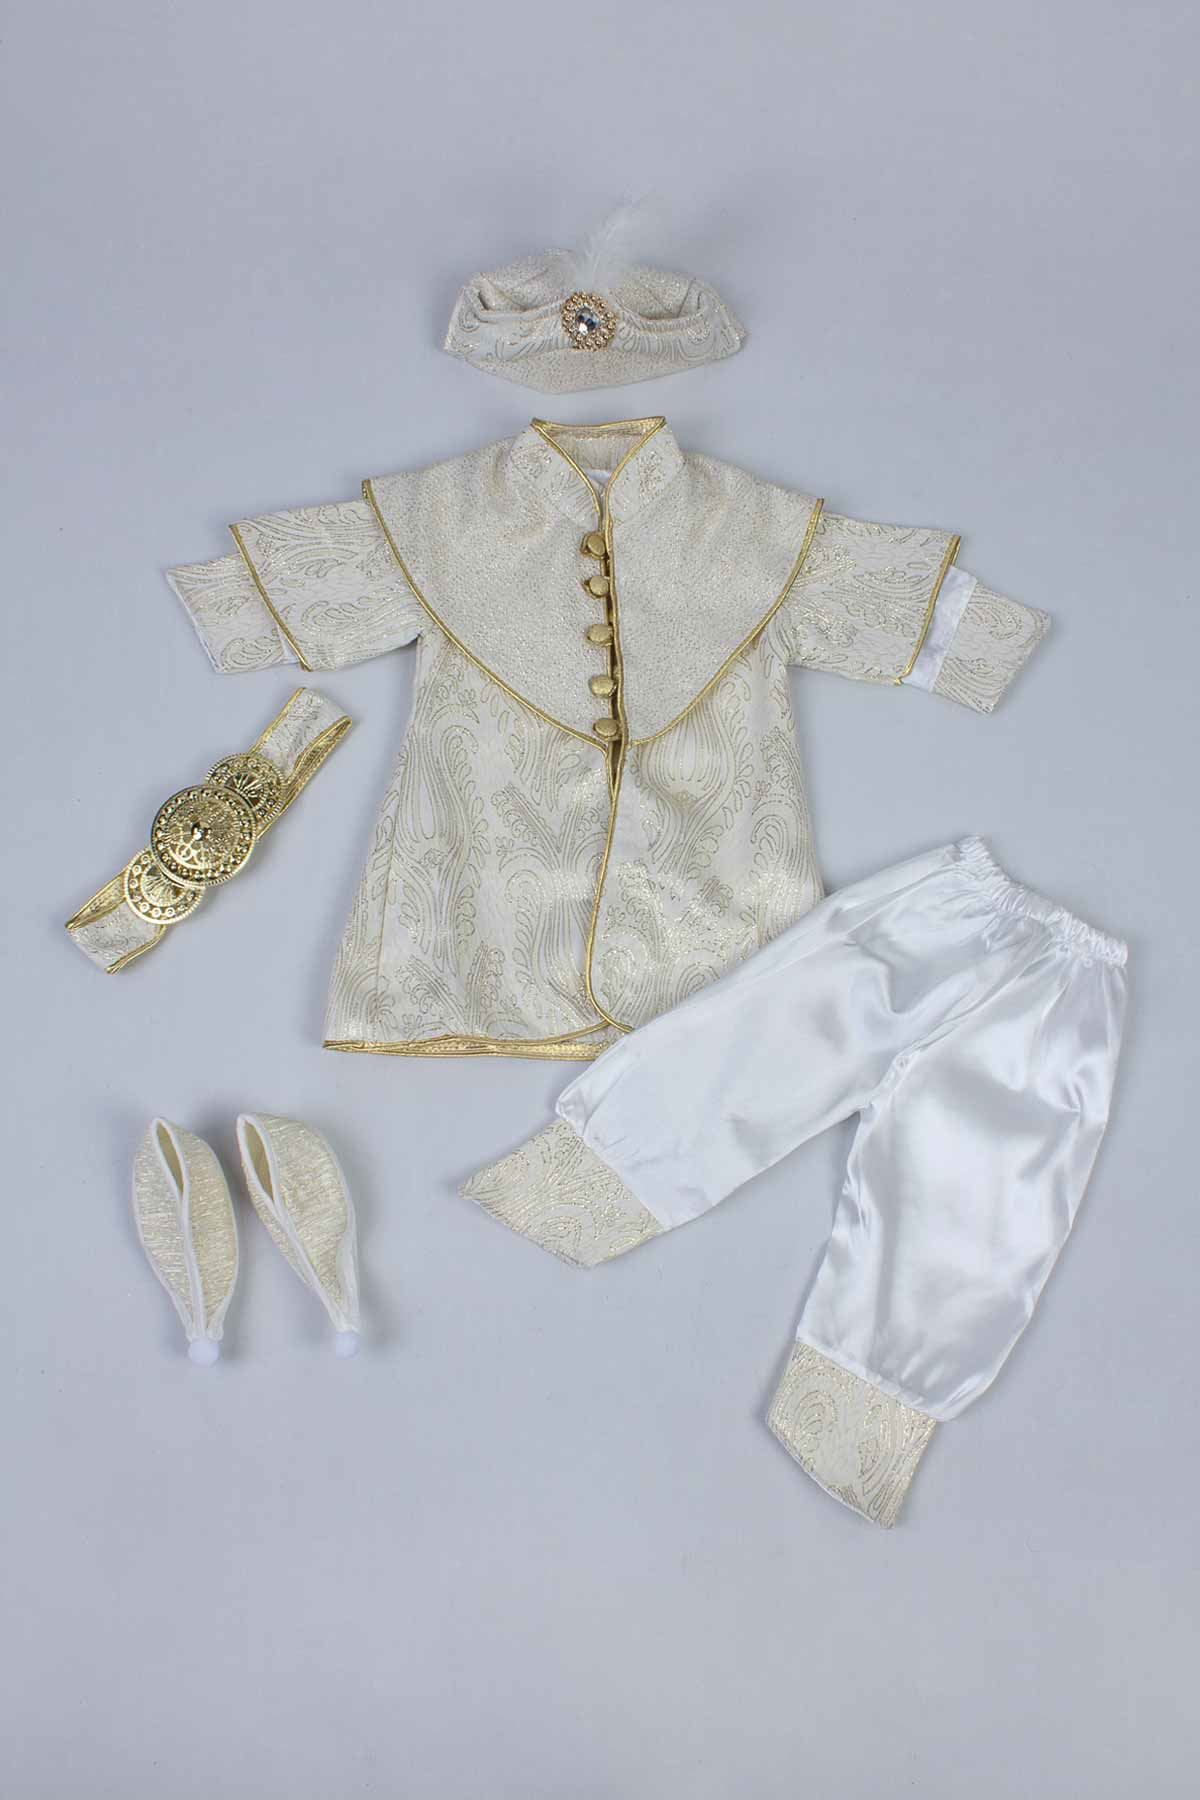 Yellow Boy Baby Suit Prince Ottoman Prince Gentleman Formal Dresses Boys Babies 5 Piece Set Male Clothing Special Occasions Outfit Model